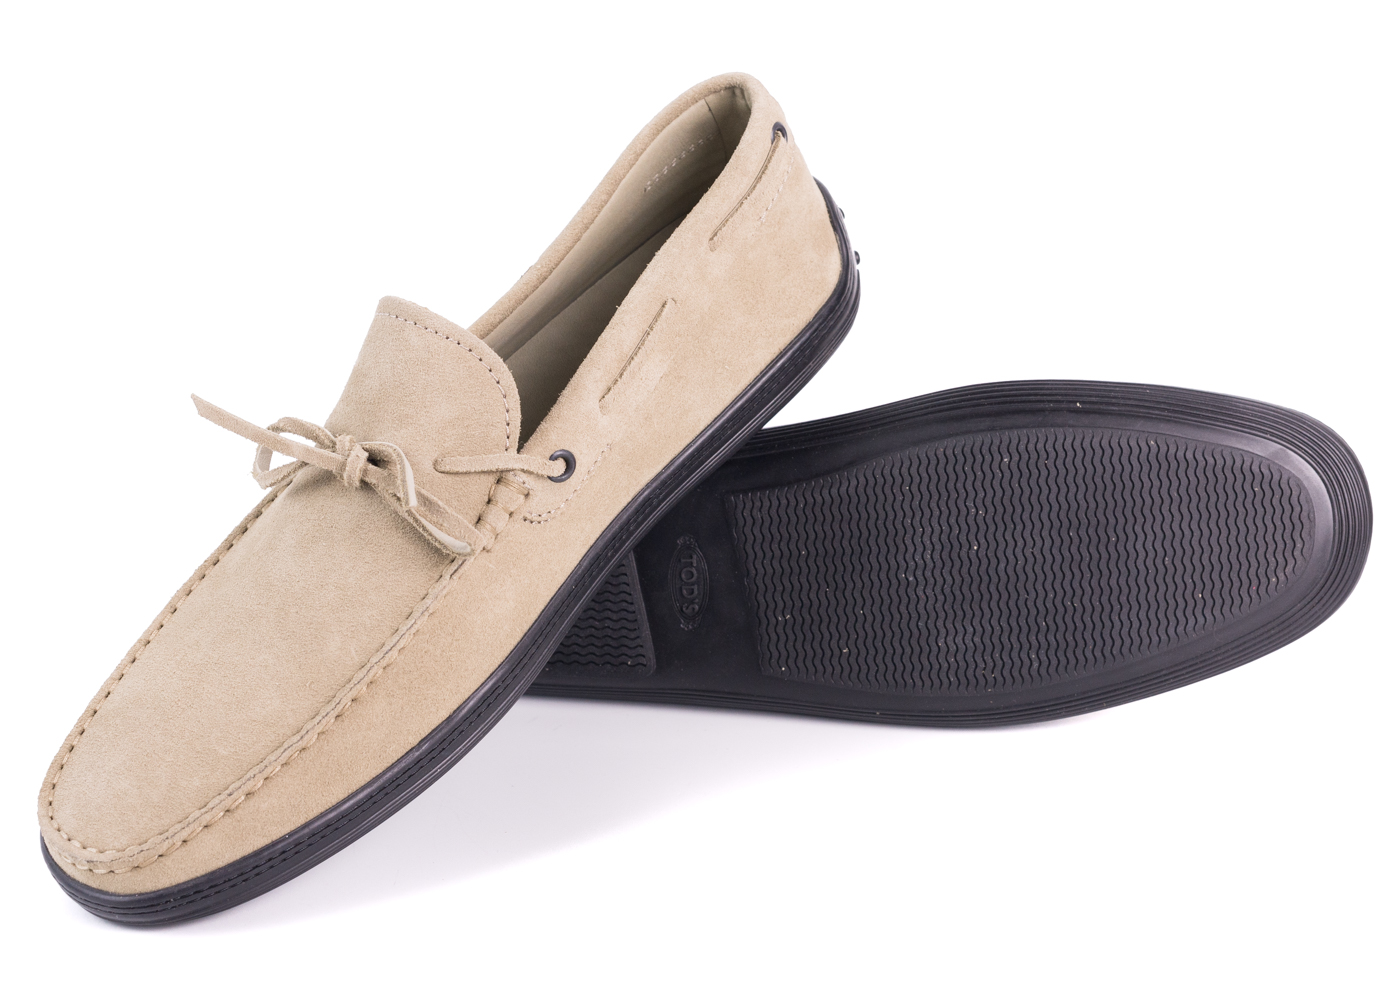 8b710ced0e7 Tod's Men's Grey Suede Black Sole Front Tie Moccasins UK6/US7 RTL ...